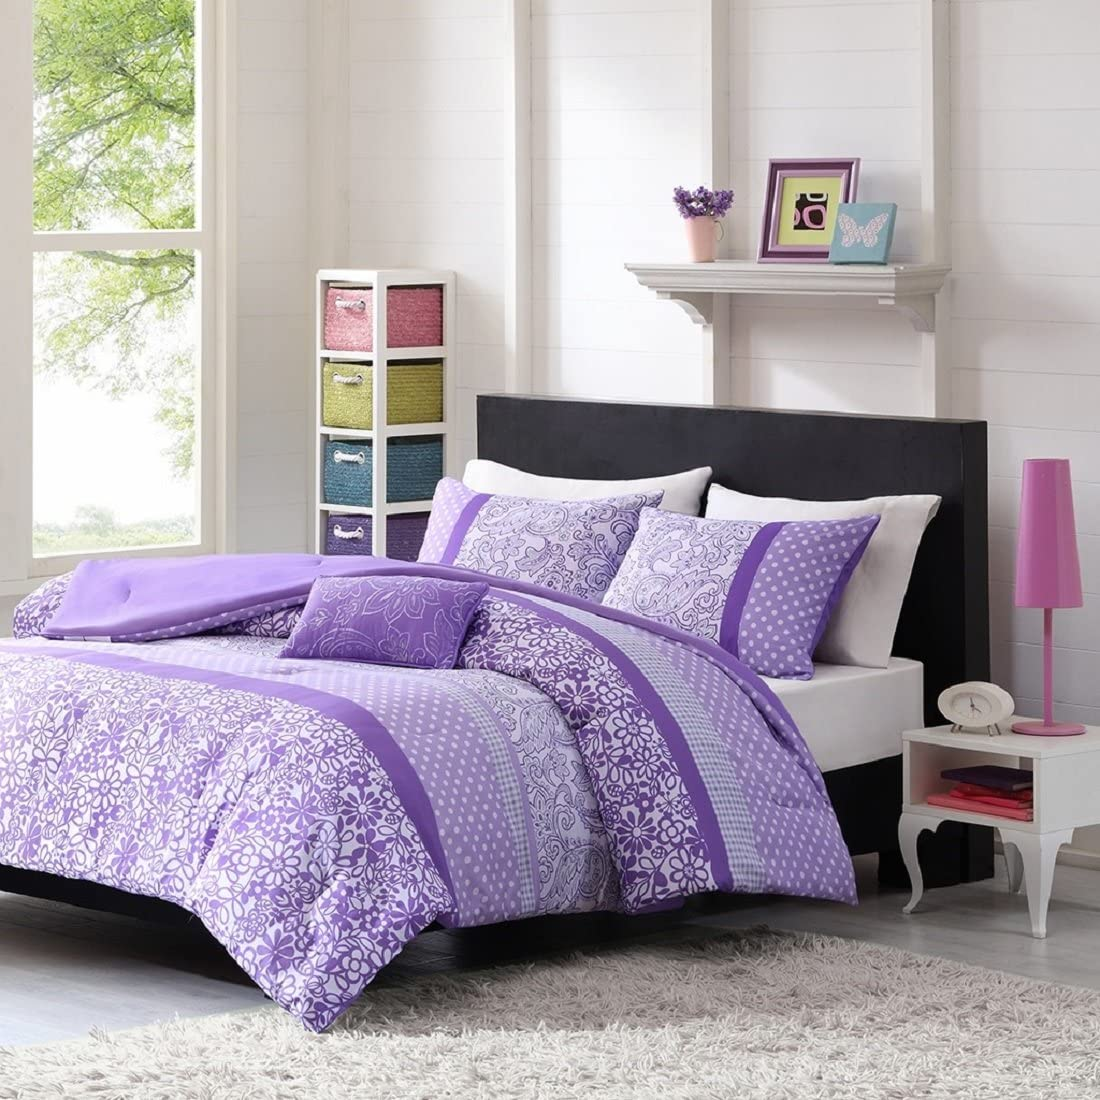 Teen Girl Comforter Sets Purple Lavender Lilac Bedding Flower Paisley Polka Dot Design With Embroidered Pillow Includes Bonus Sleep Mask From Designer Home Full Queen Home Kitchen